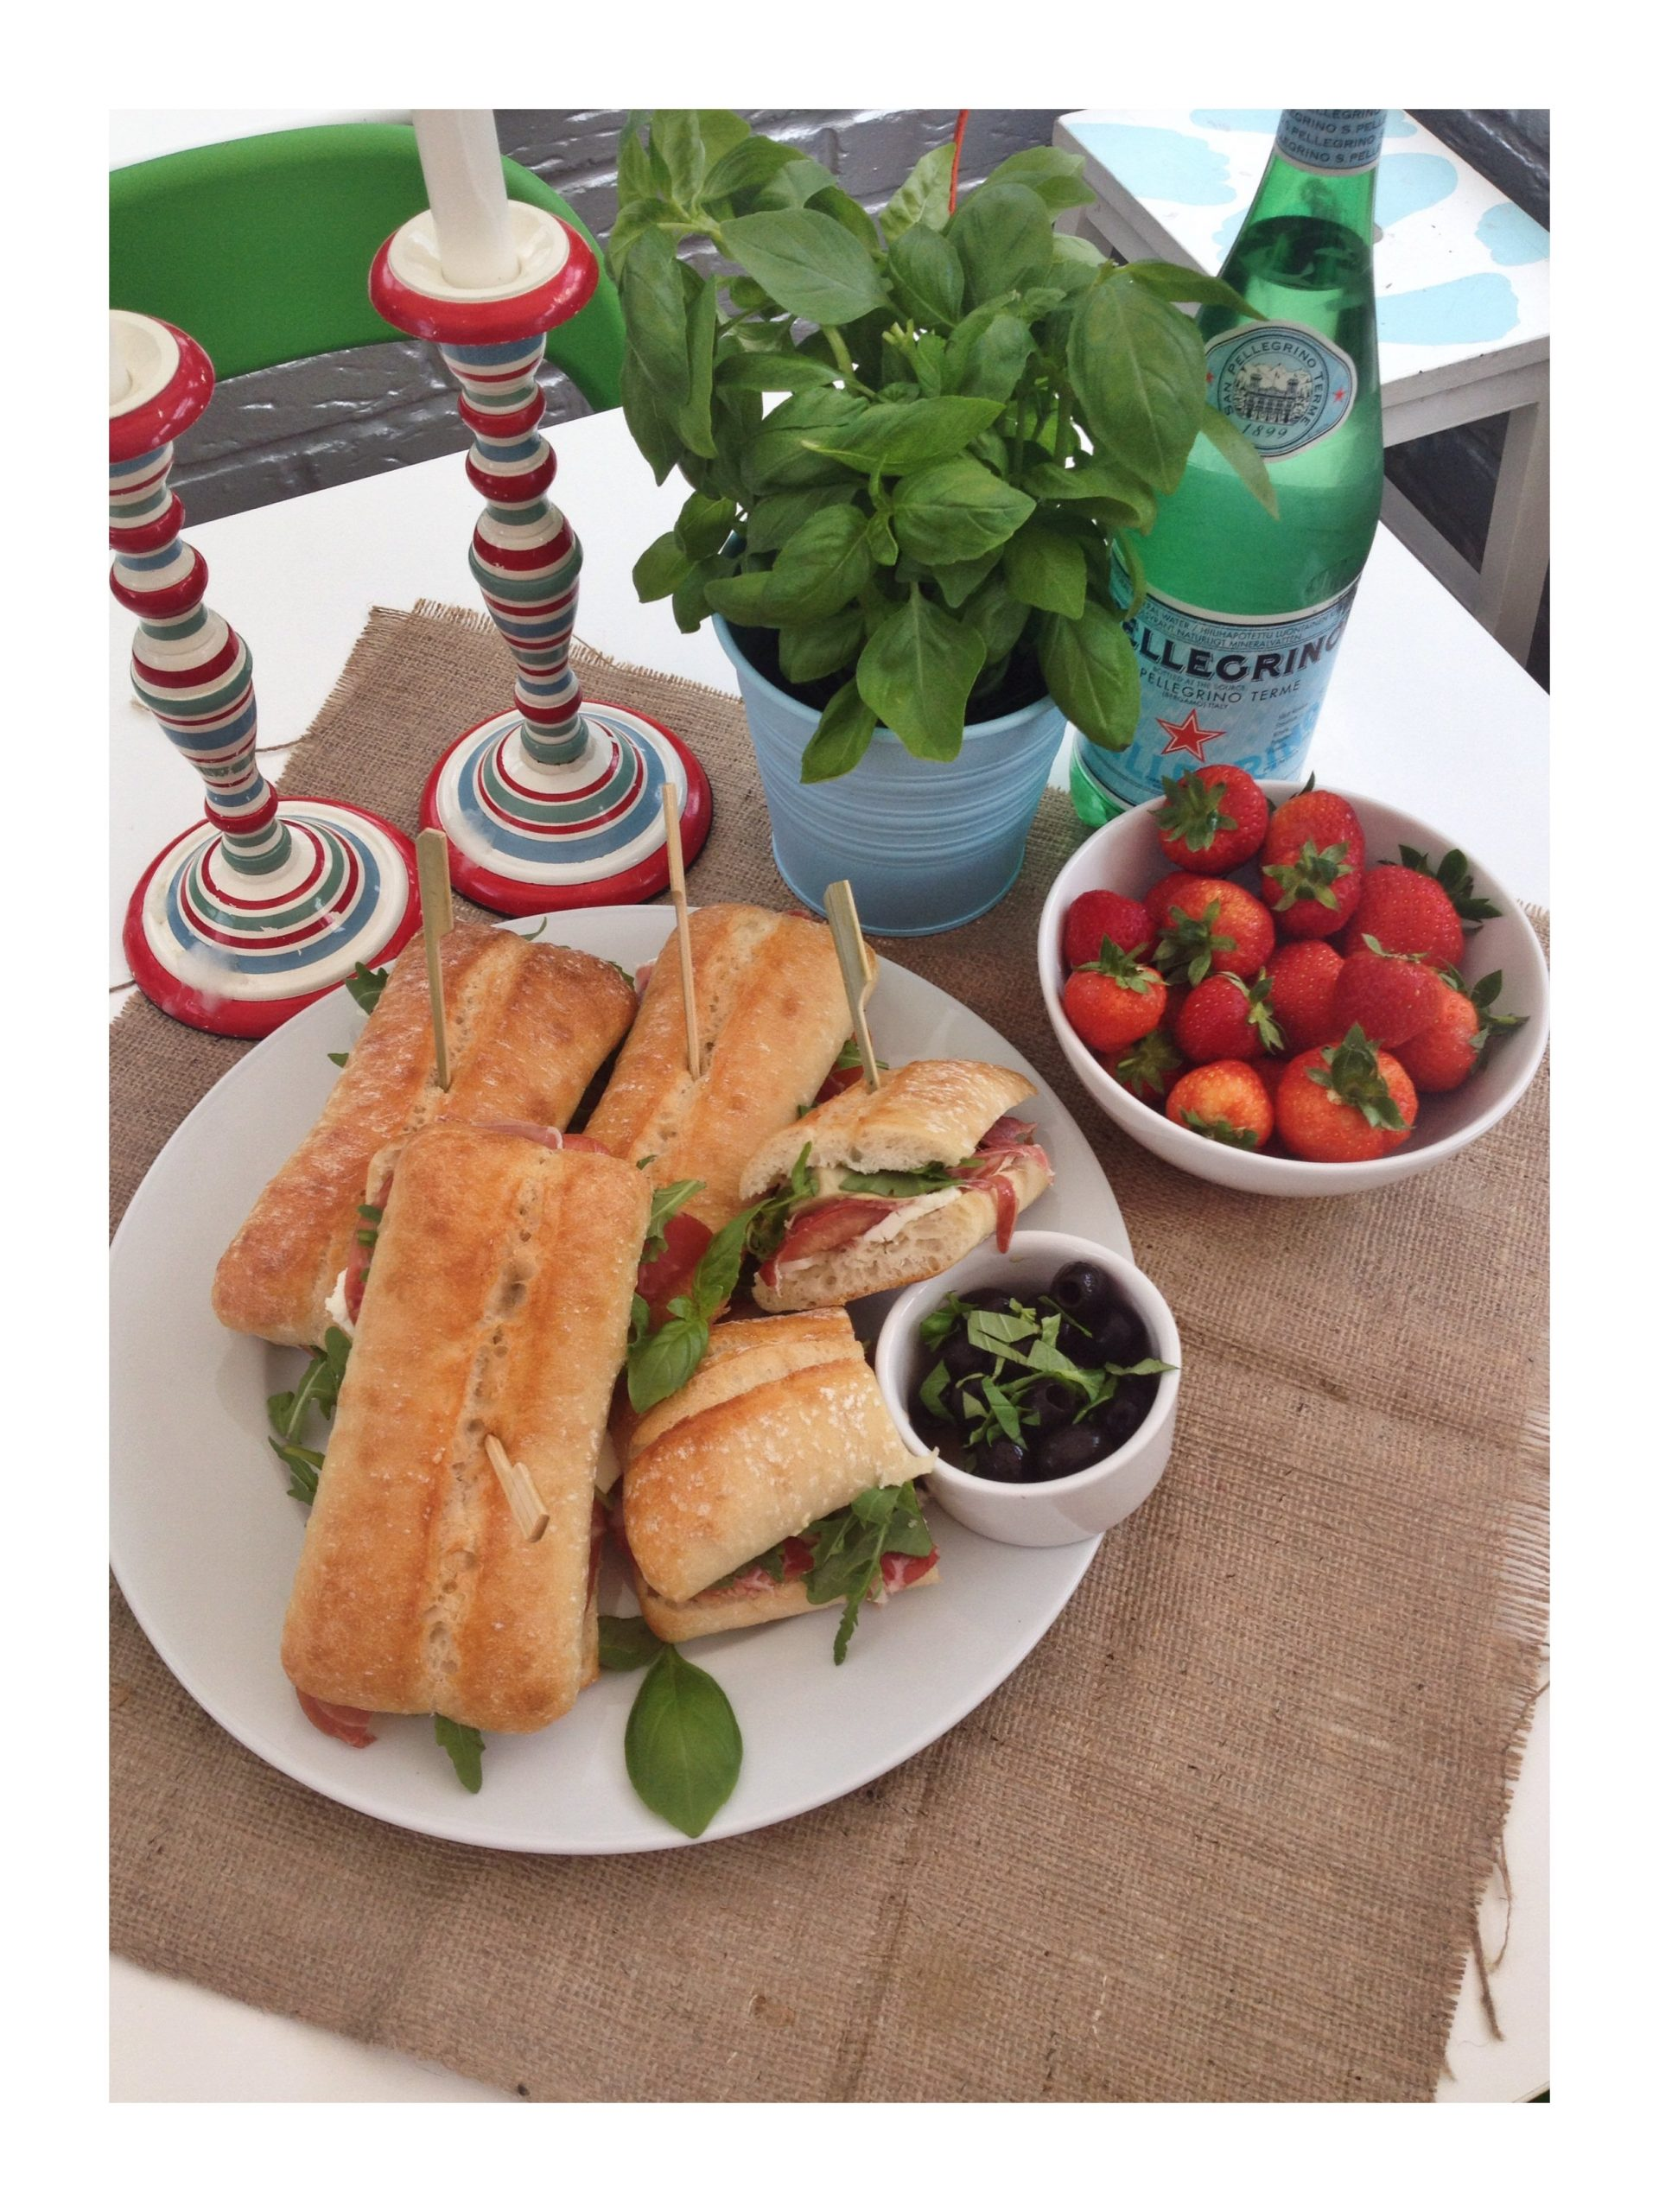 italian style deli sandwich recipe, amazing sandwich ideas, italian sandwich recipe, quick meal idea, things to make with salami, things to make with jarred antipasti, Daisies & Pie, daisies and pie